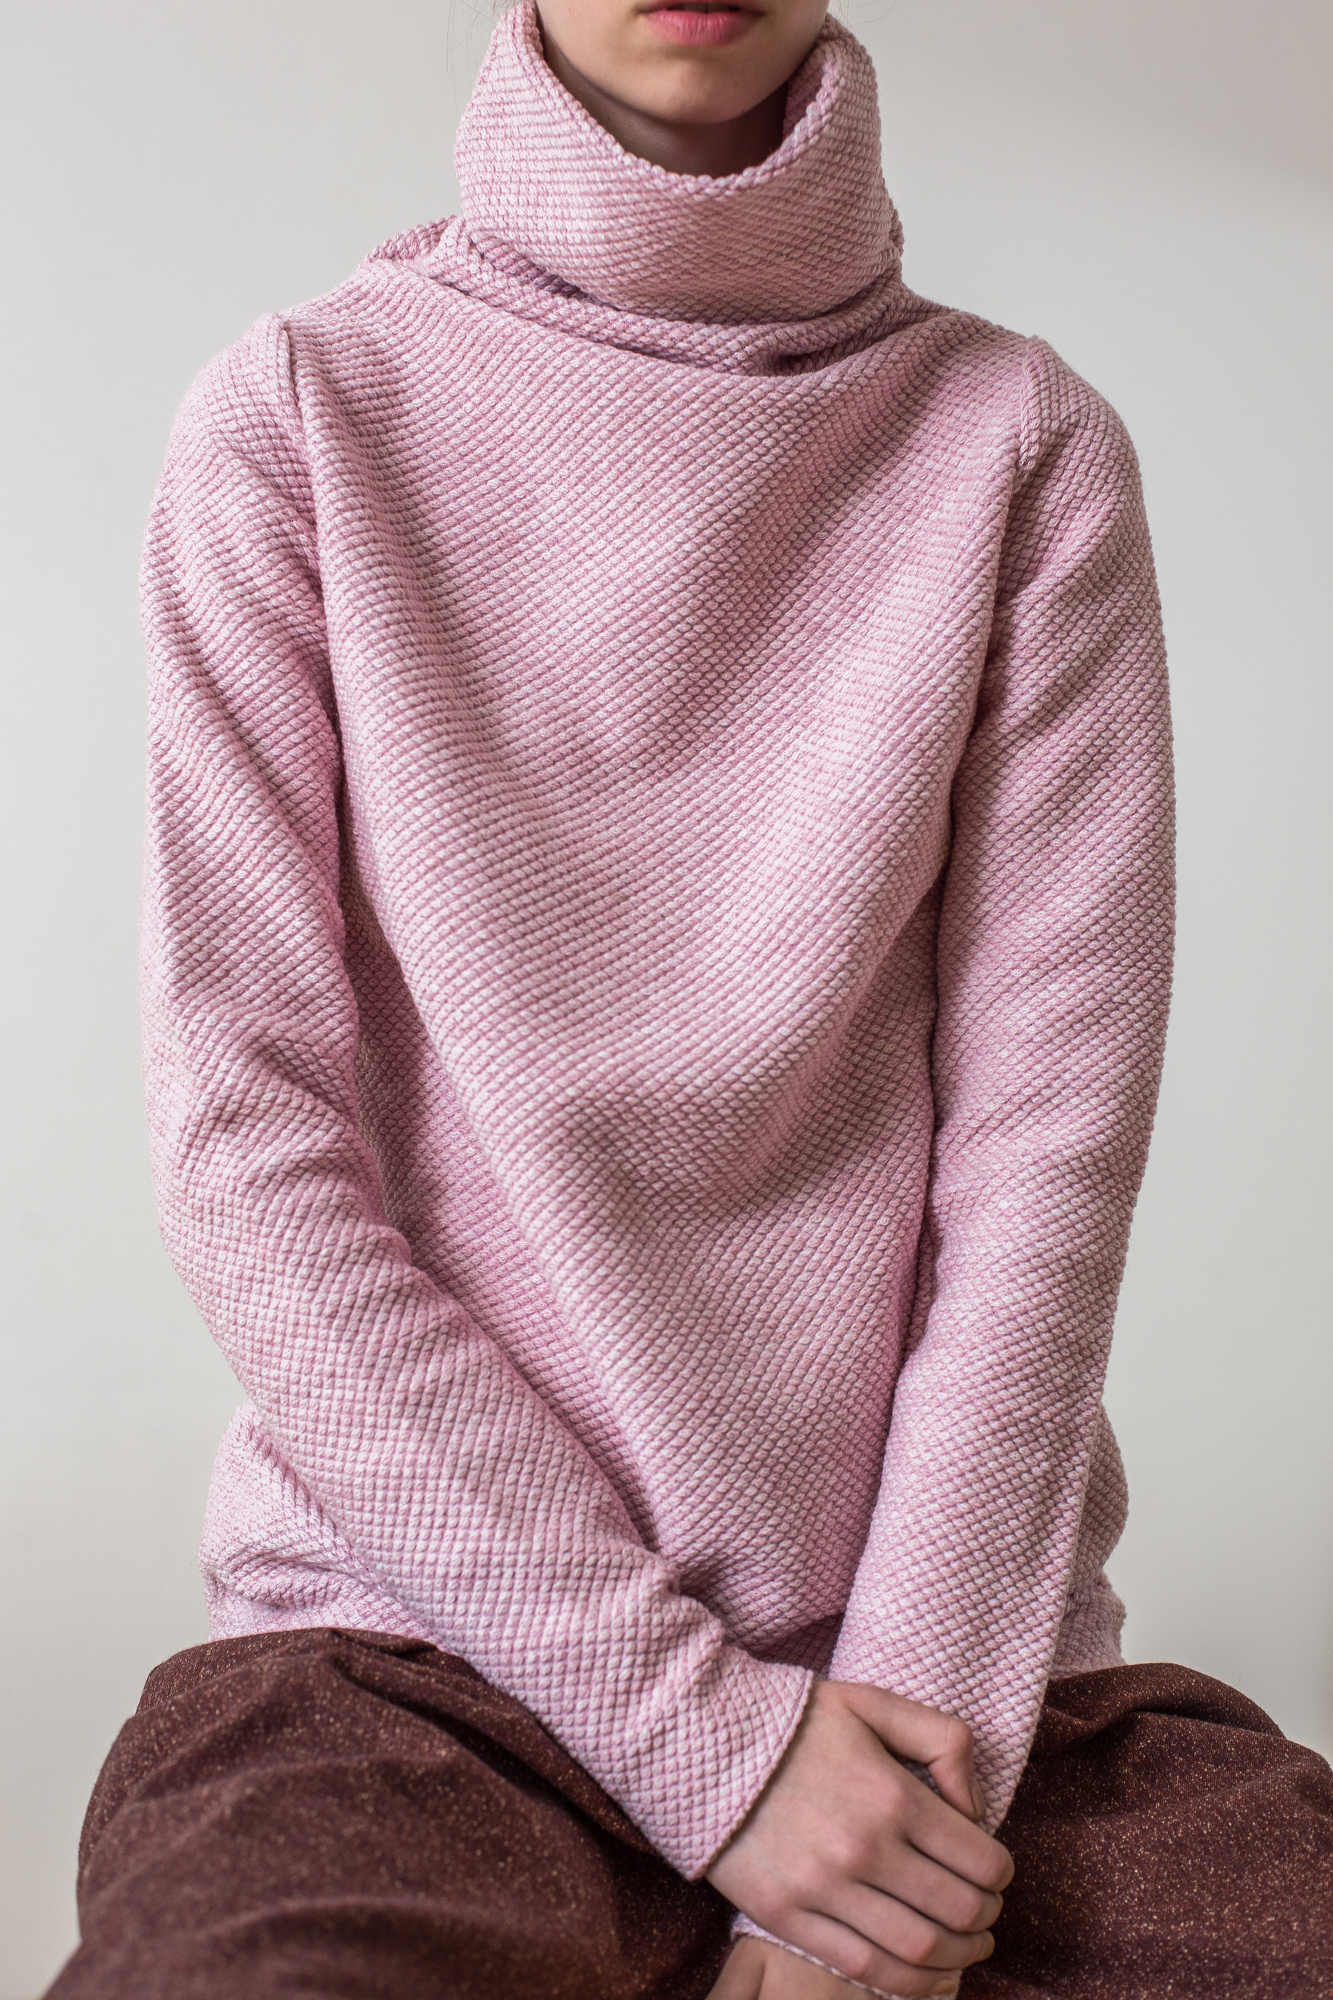 wearenotsisters_wrns_obstacle-sweater_06